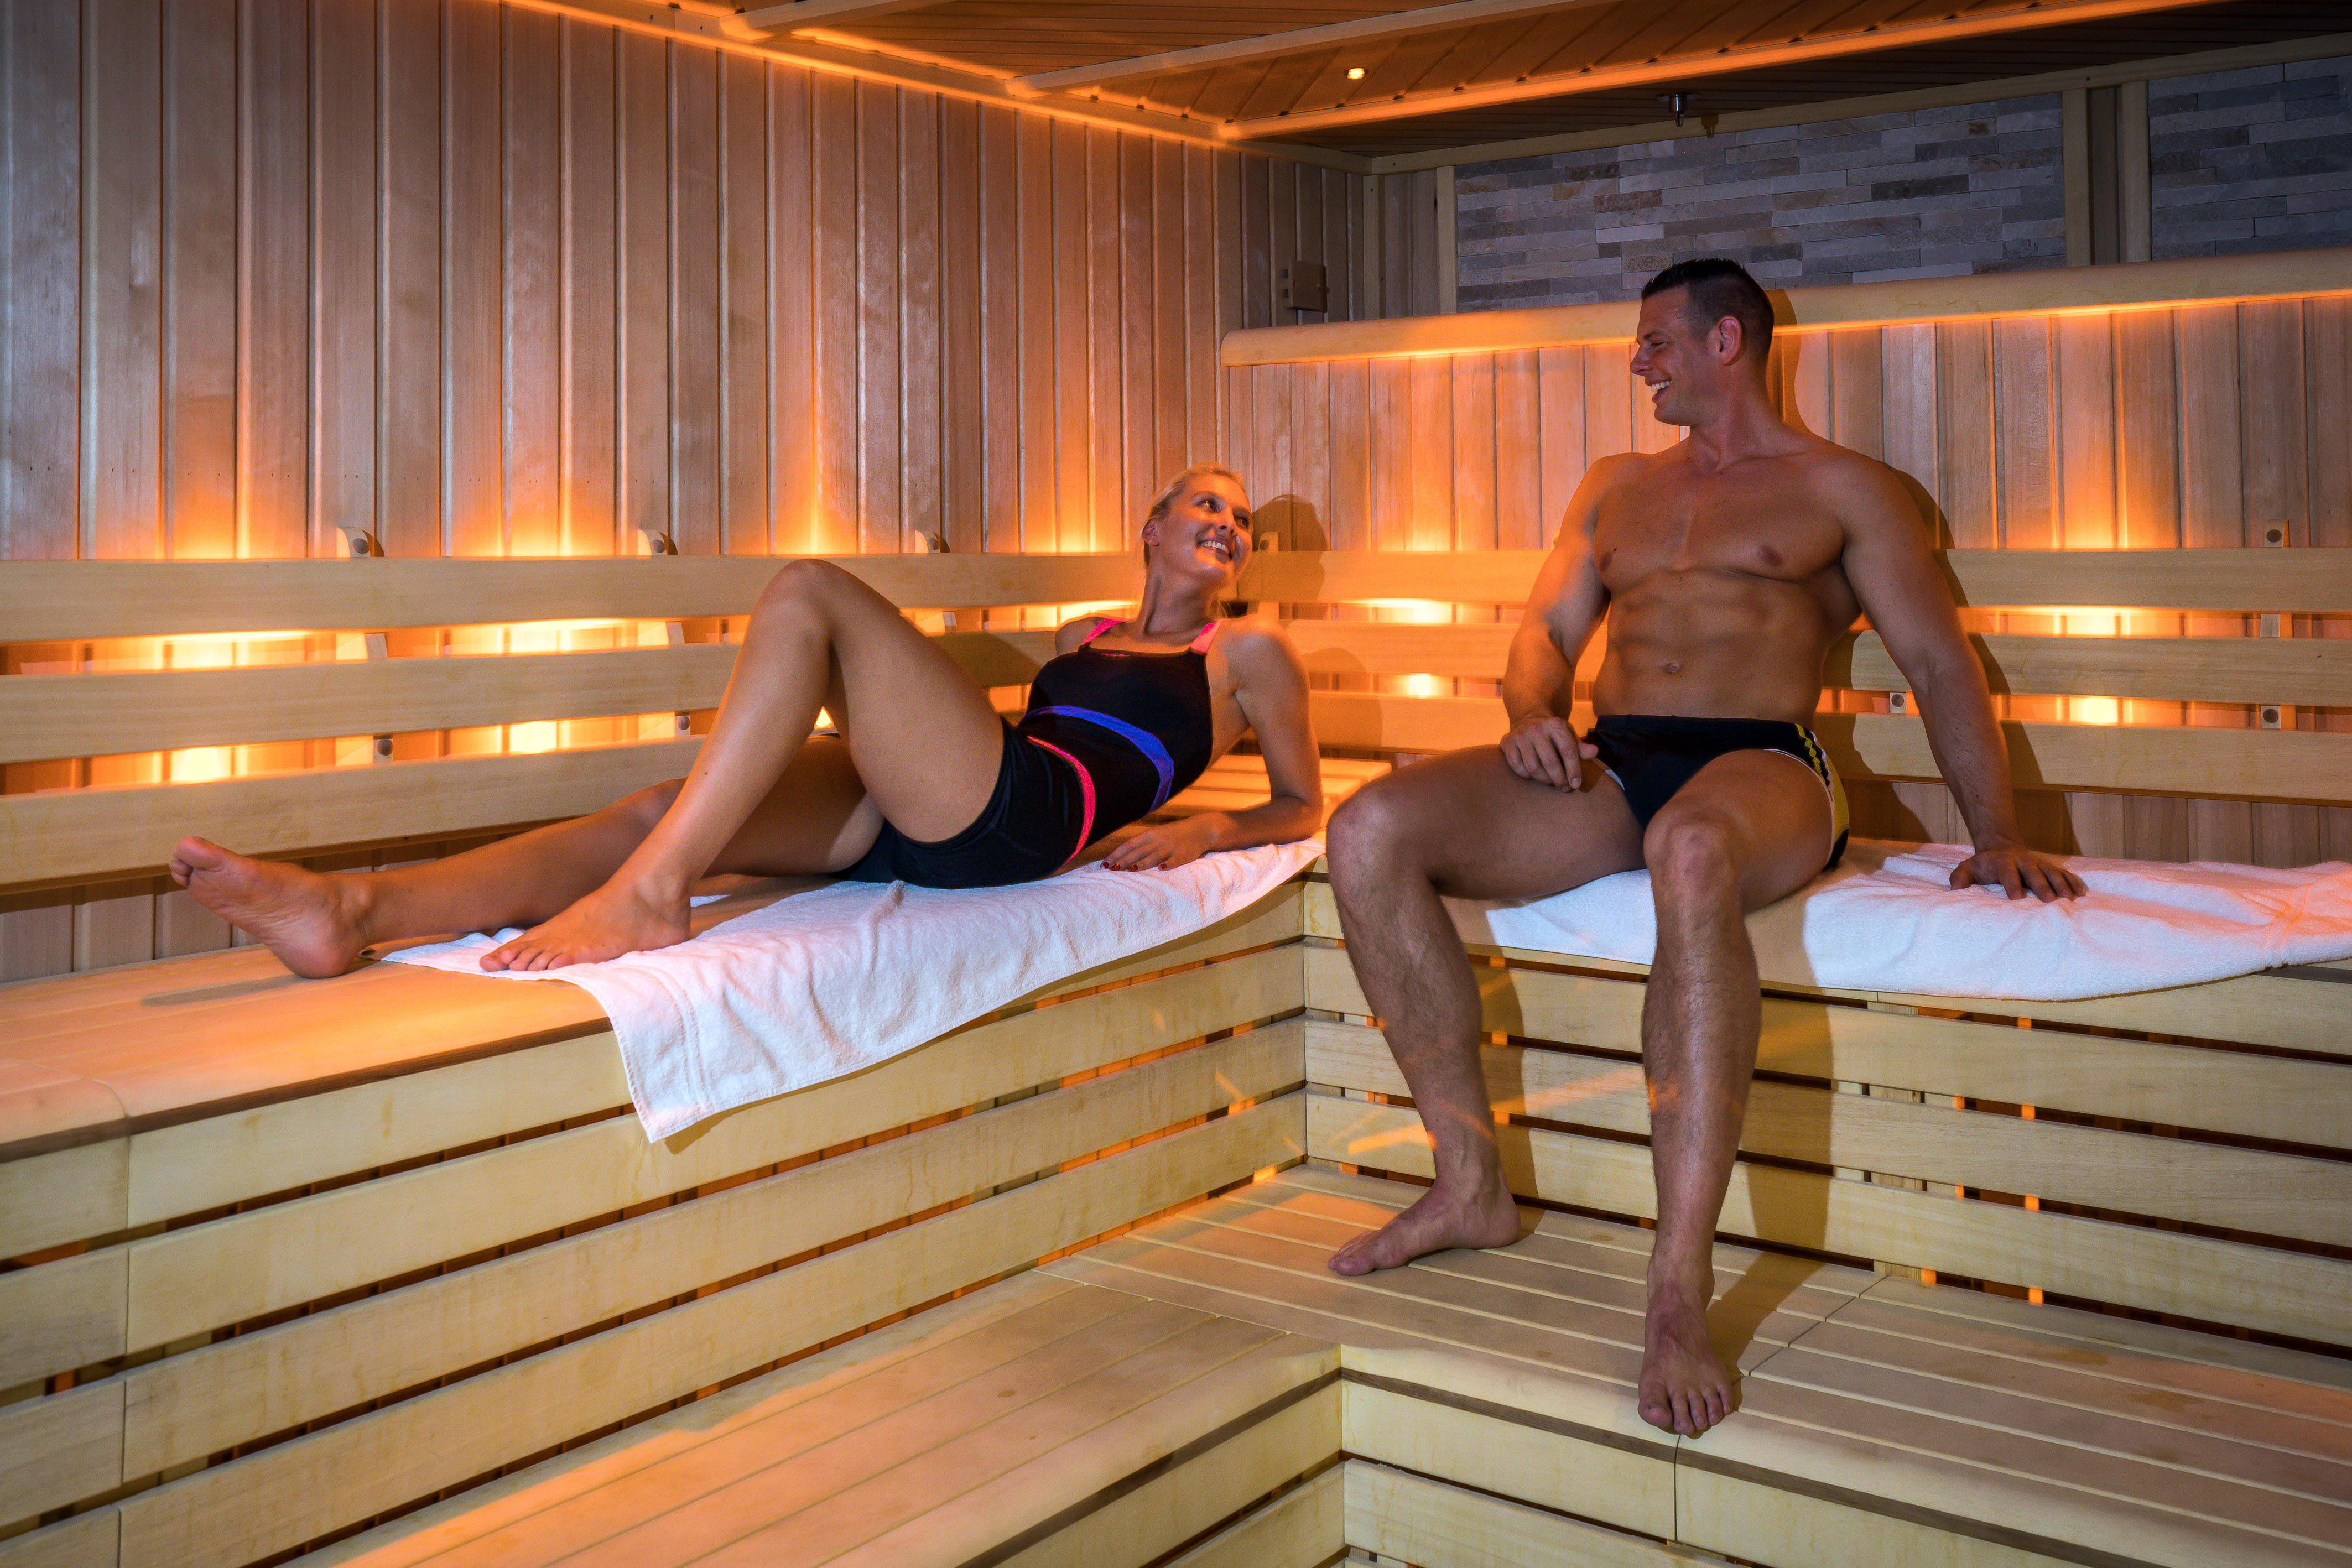 Two friends enjoying their time in the sauna